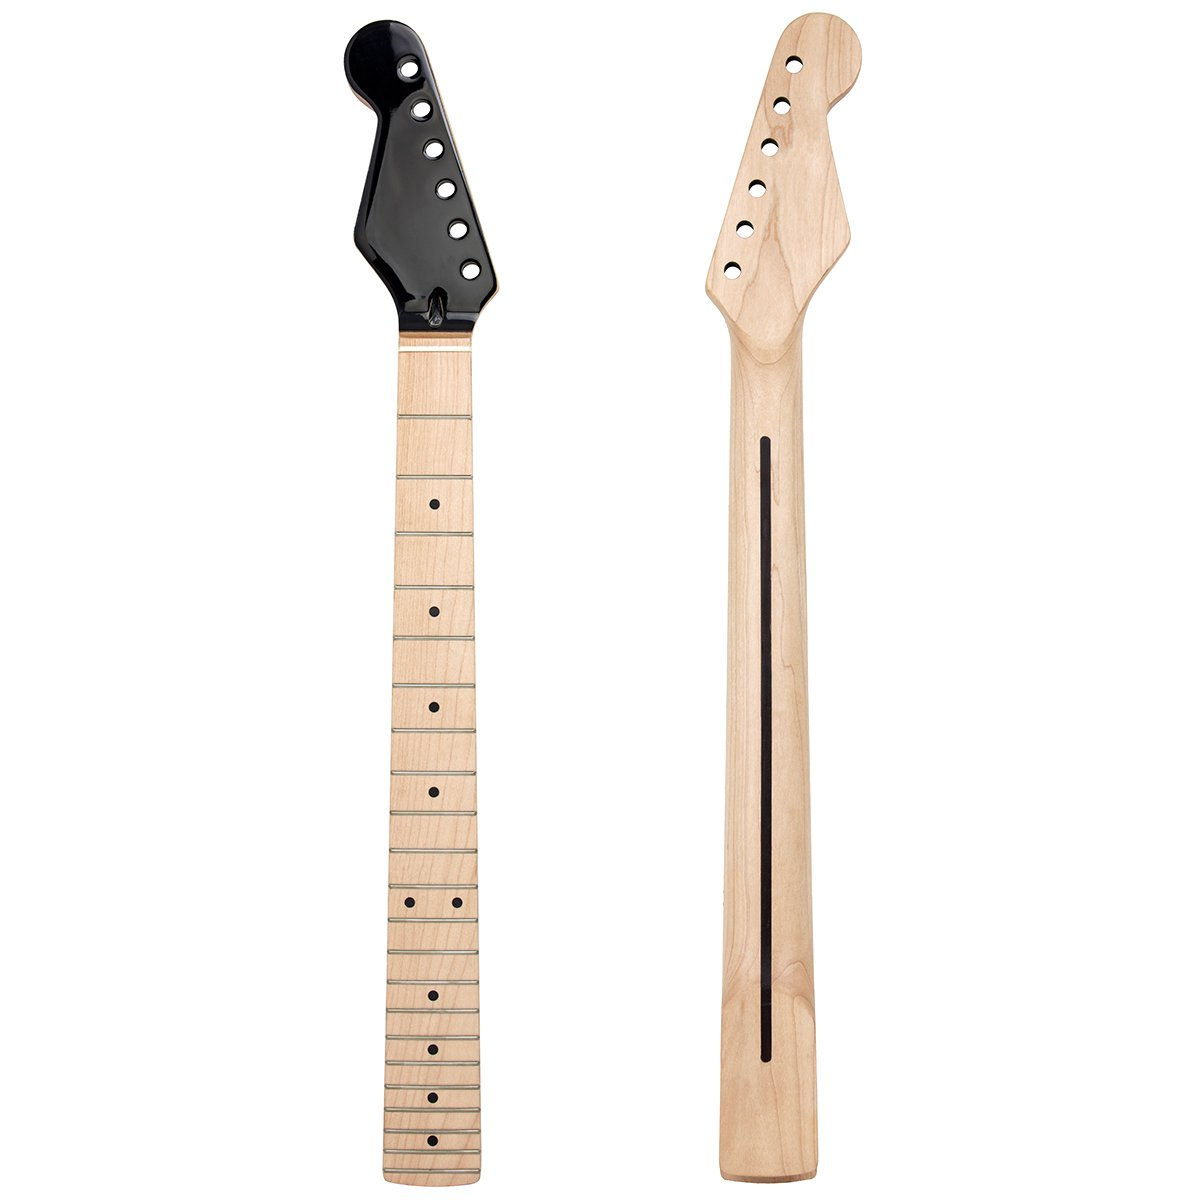 Left Hand Electric Guitar Neck for Similar Guitar Parts Replacement Canada Maple 22 Fret Bolt On Clear Satin with Black Gloss Head Ltd 4334371771